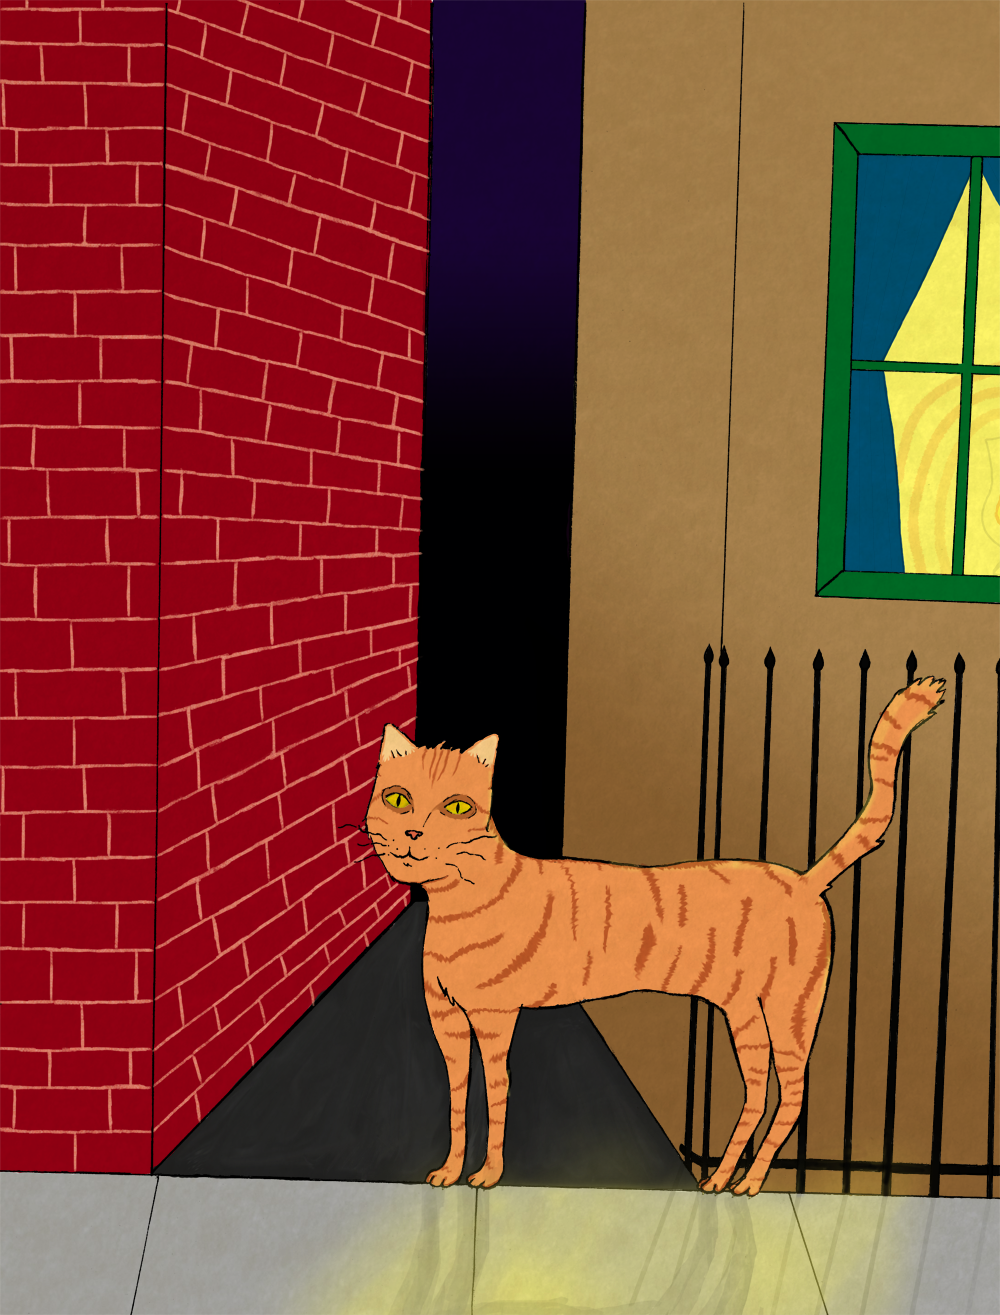 macavity the mystery cat Macavity's a mystery cat: he's called the hidden paw - for he's the master criminal who can defy the lawhe's the bafflement of scotland yard, the flying squad's despair:for when they reach.